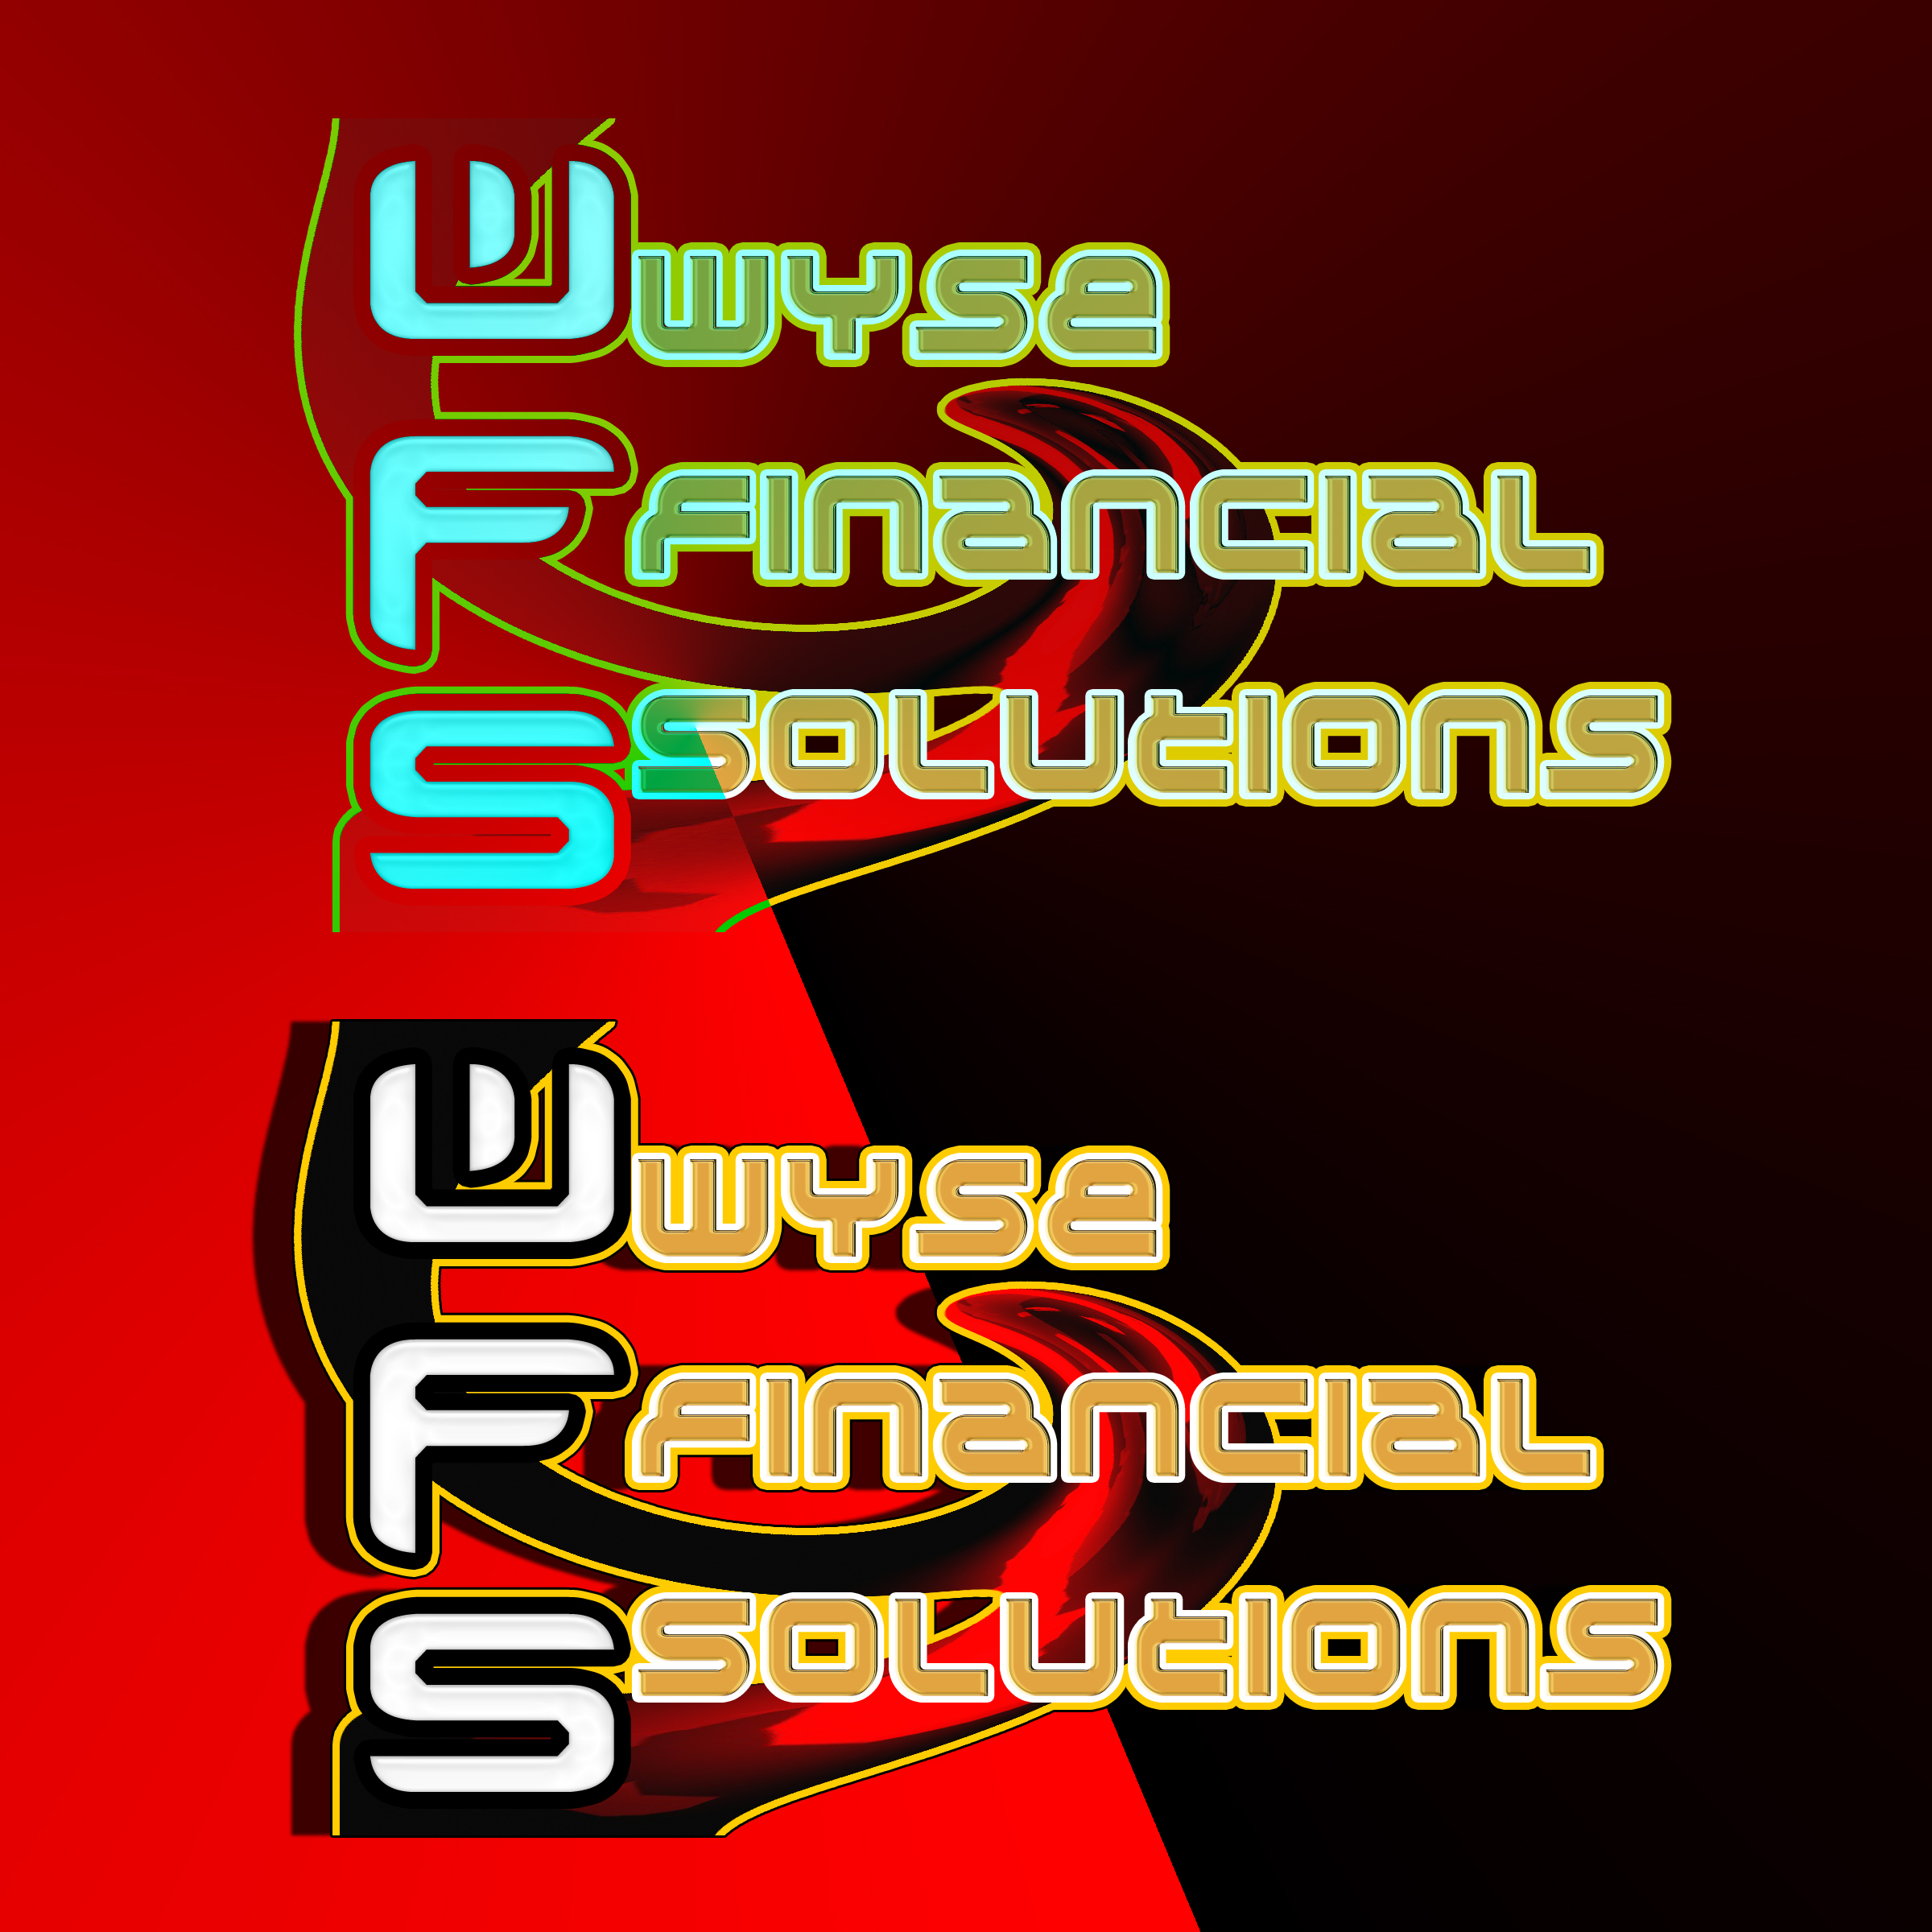 Logo Design by MITUCA ANDREI - Entry No. 24 in the Logo Design Contest Fun Logo Design for Wyse Financial Solutions.